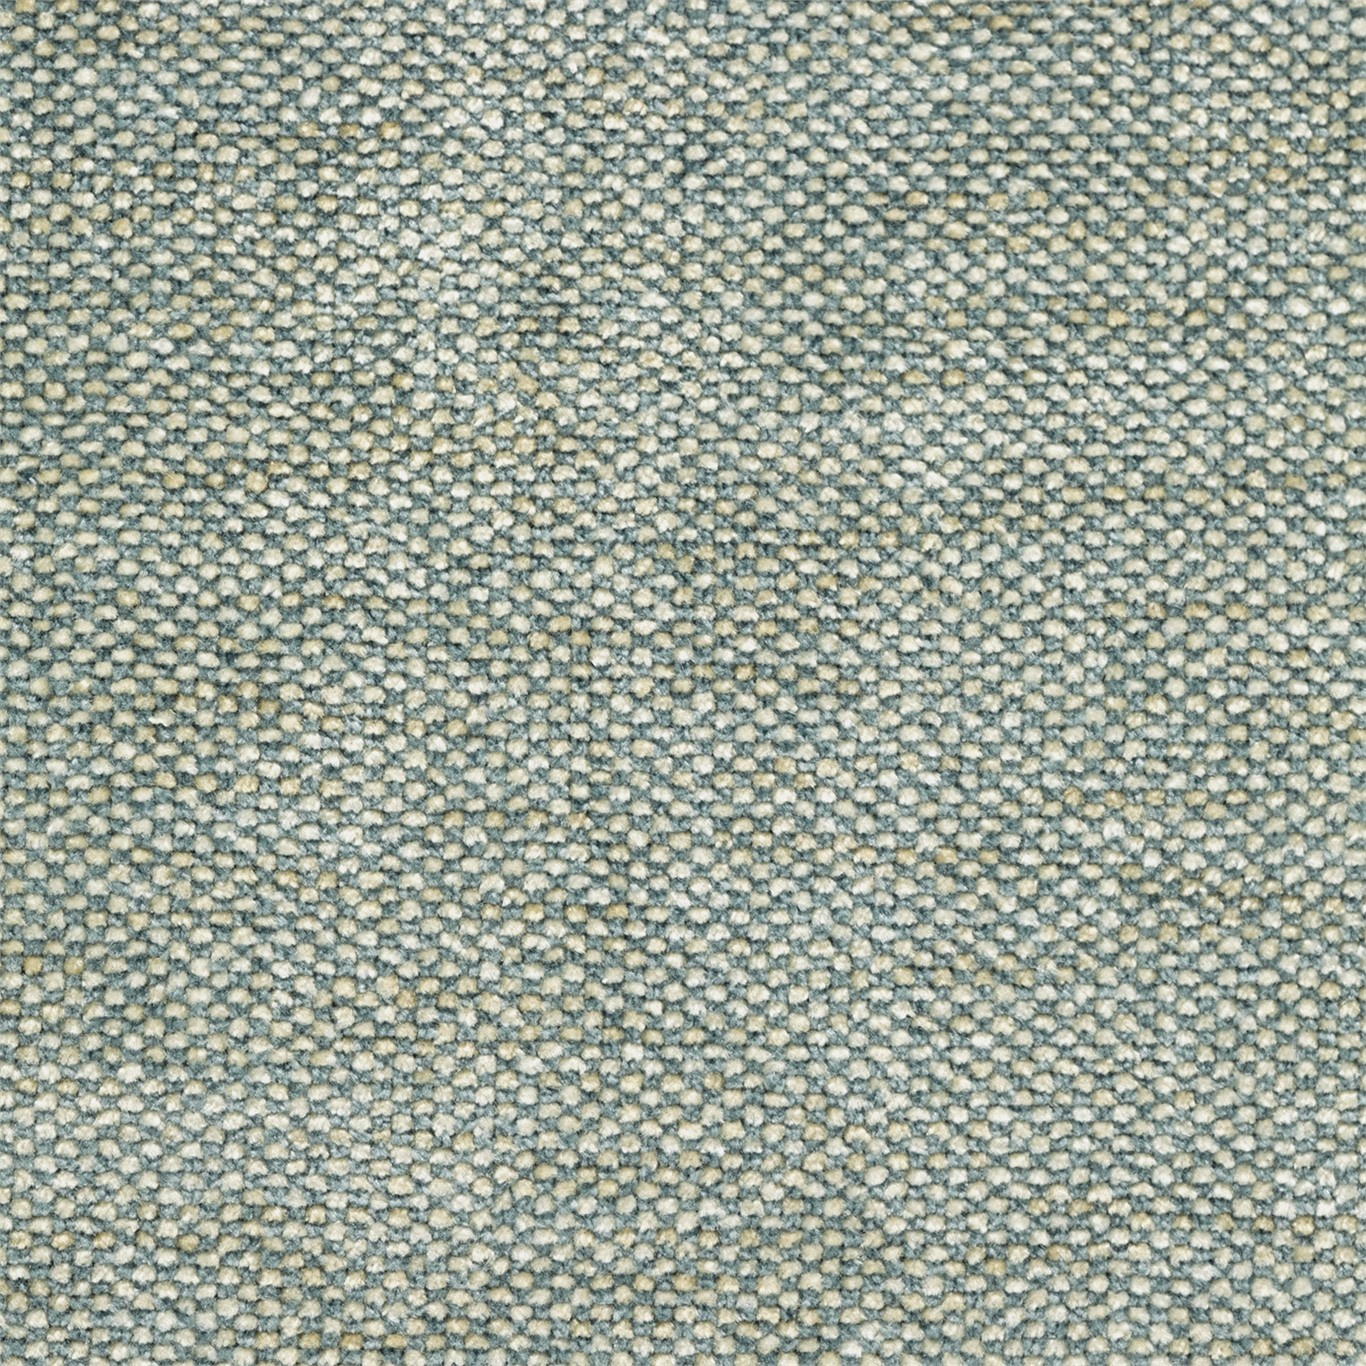 Image of Sanderson Moorbank Celadon Fabric 236309